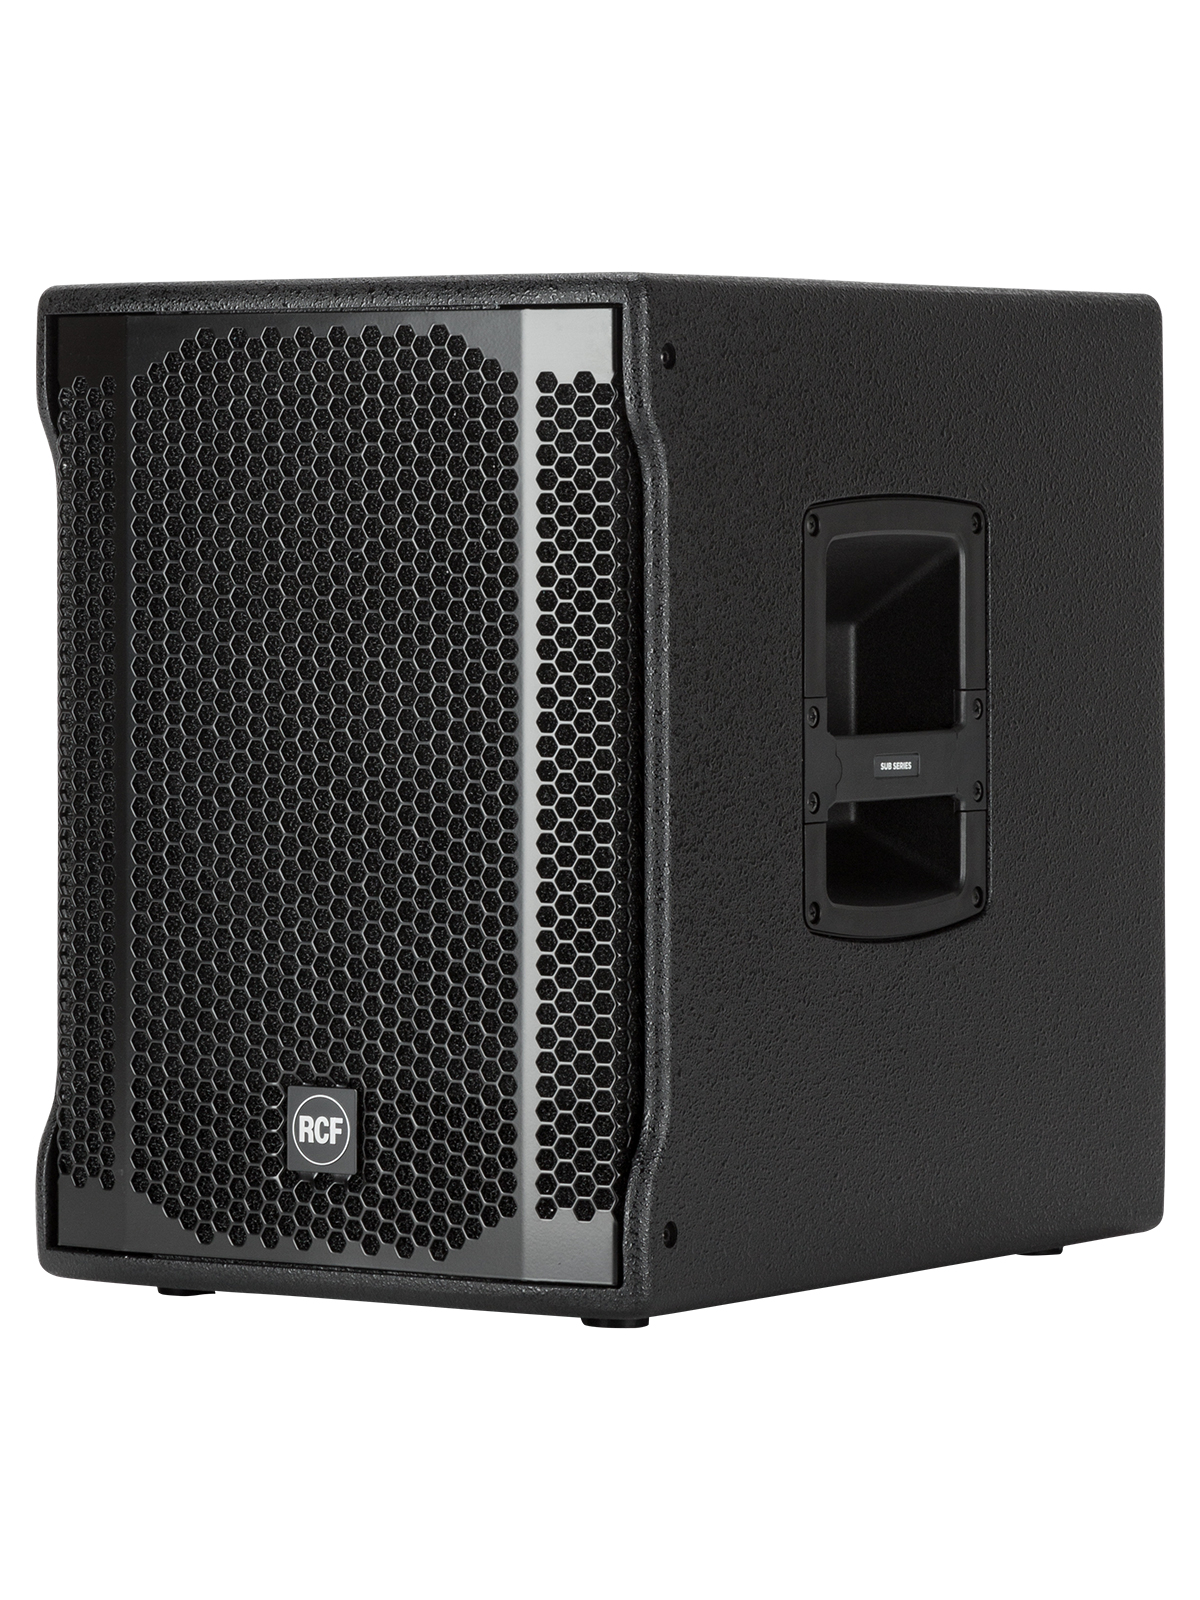 Image of   RCF Subwoofer SUB702-AS mk2 aktiv 700W